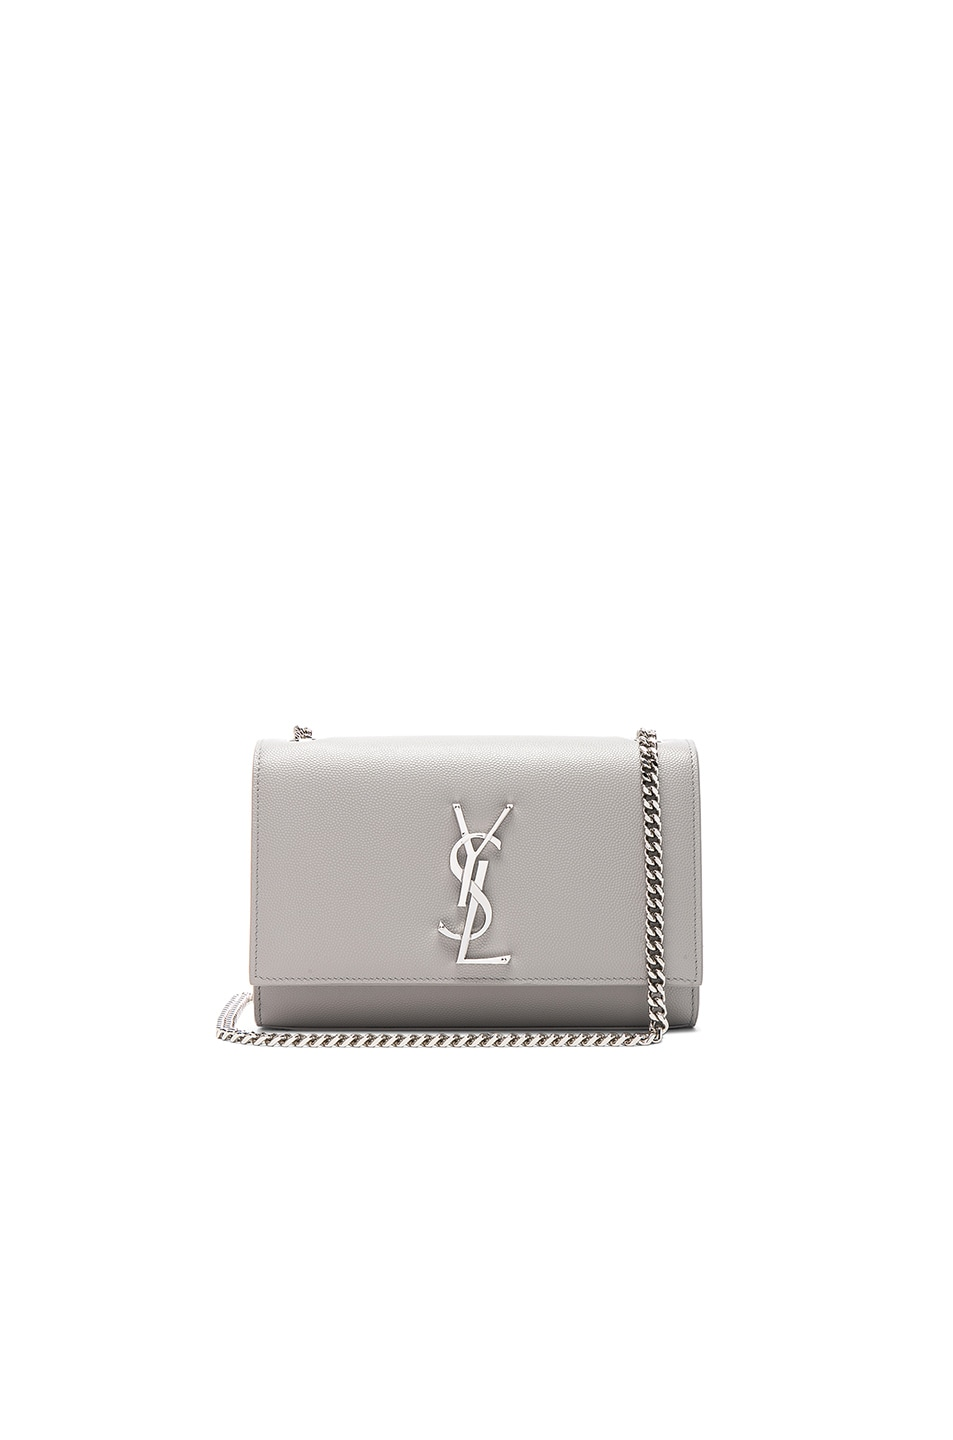 46dc2251f0 Image 1 of Saint Laurent Small Monogramme Kate Chain Bag in Light Grey